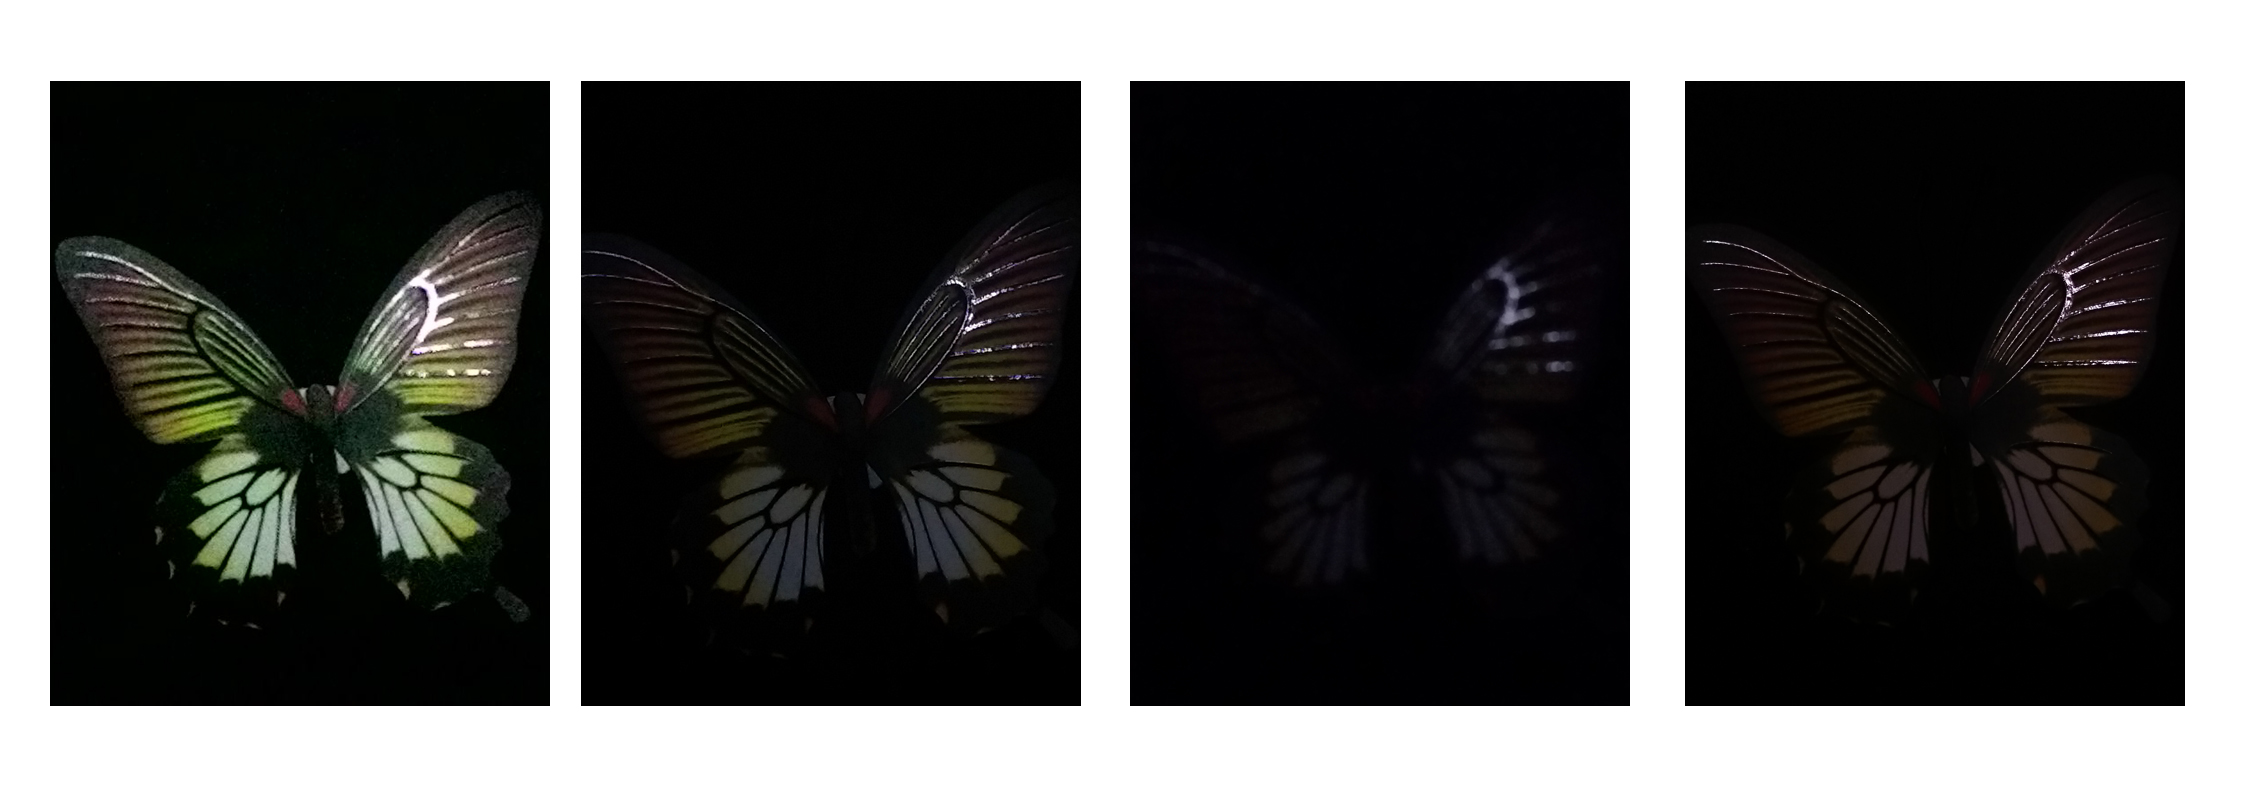 Photos taken in their respective low-light/night modes. <br> Left to right: ASUS ZenFone 5, HTC One (M8), Samsung Galaxy S5 and Sony Xperia Z2.